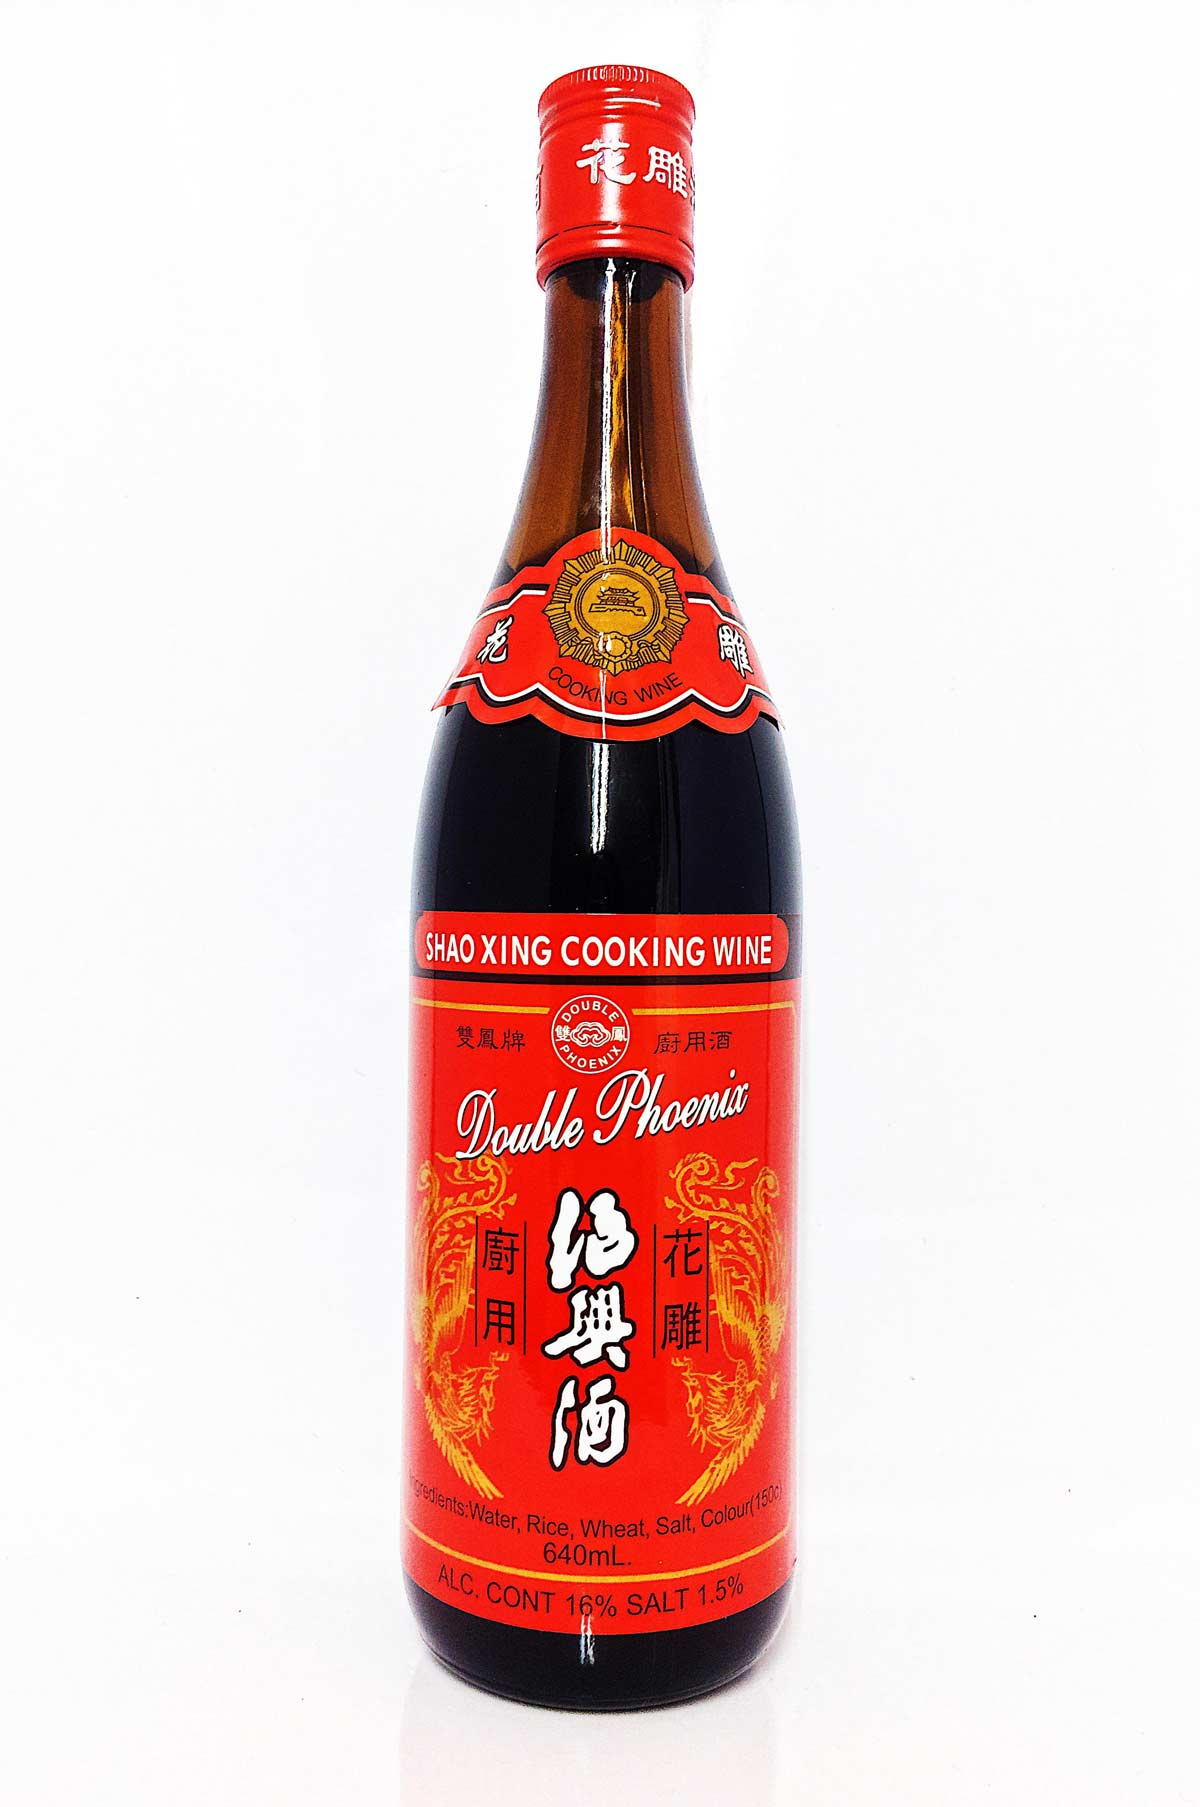 a bottle of Chinese cooking wine